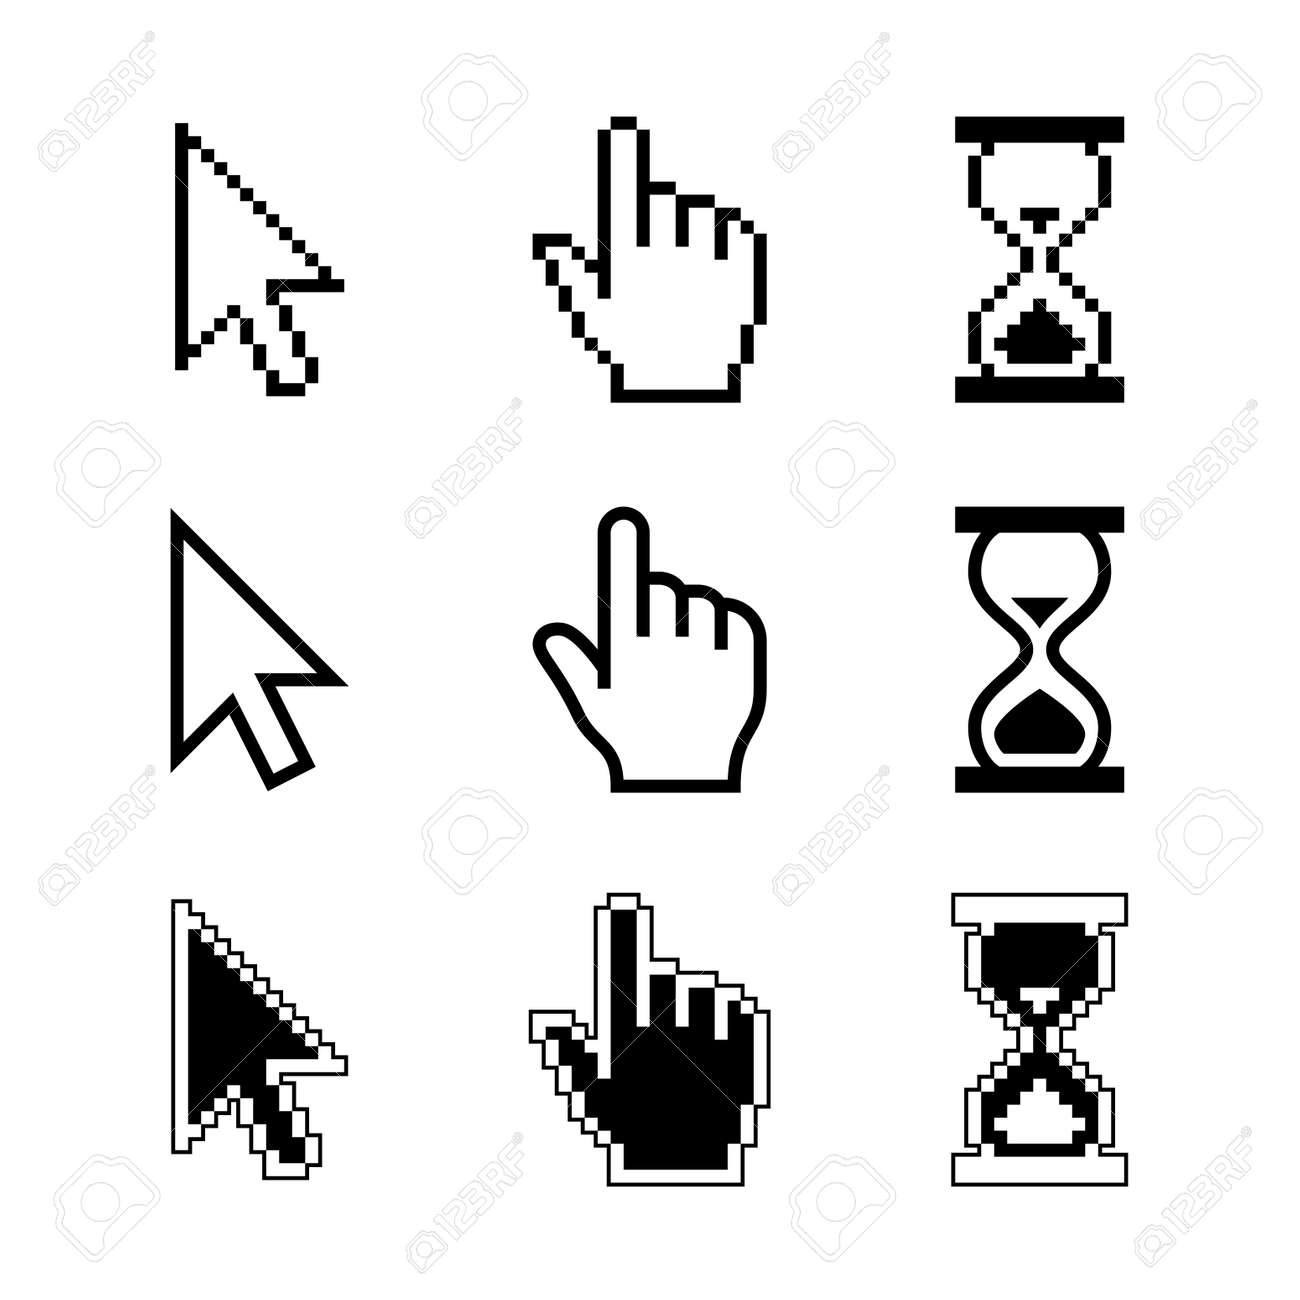 Pixel cursors icons - mouse cursor hand pointer hourglass. Vector illustration. - 33203447